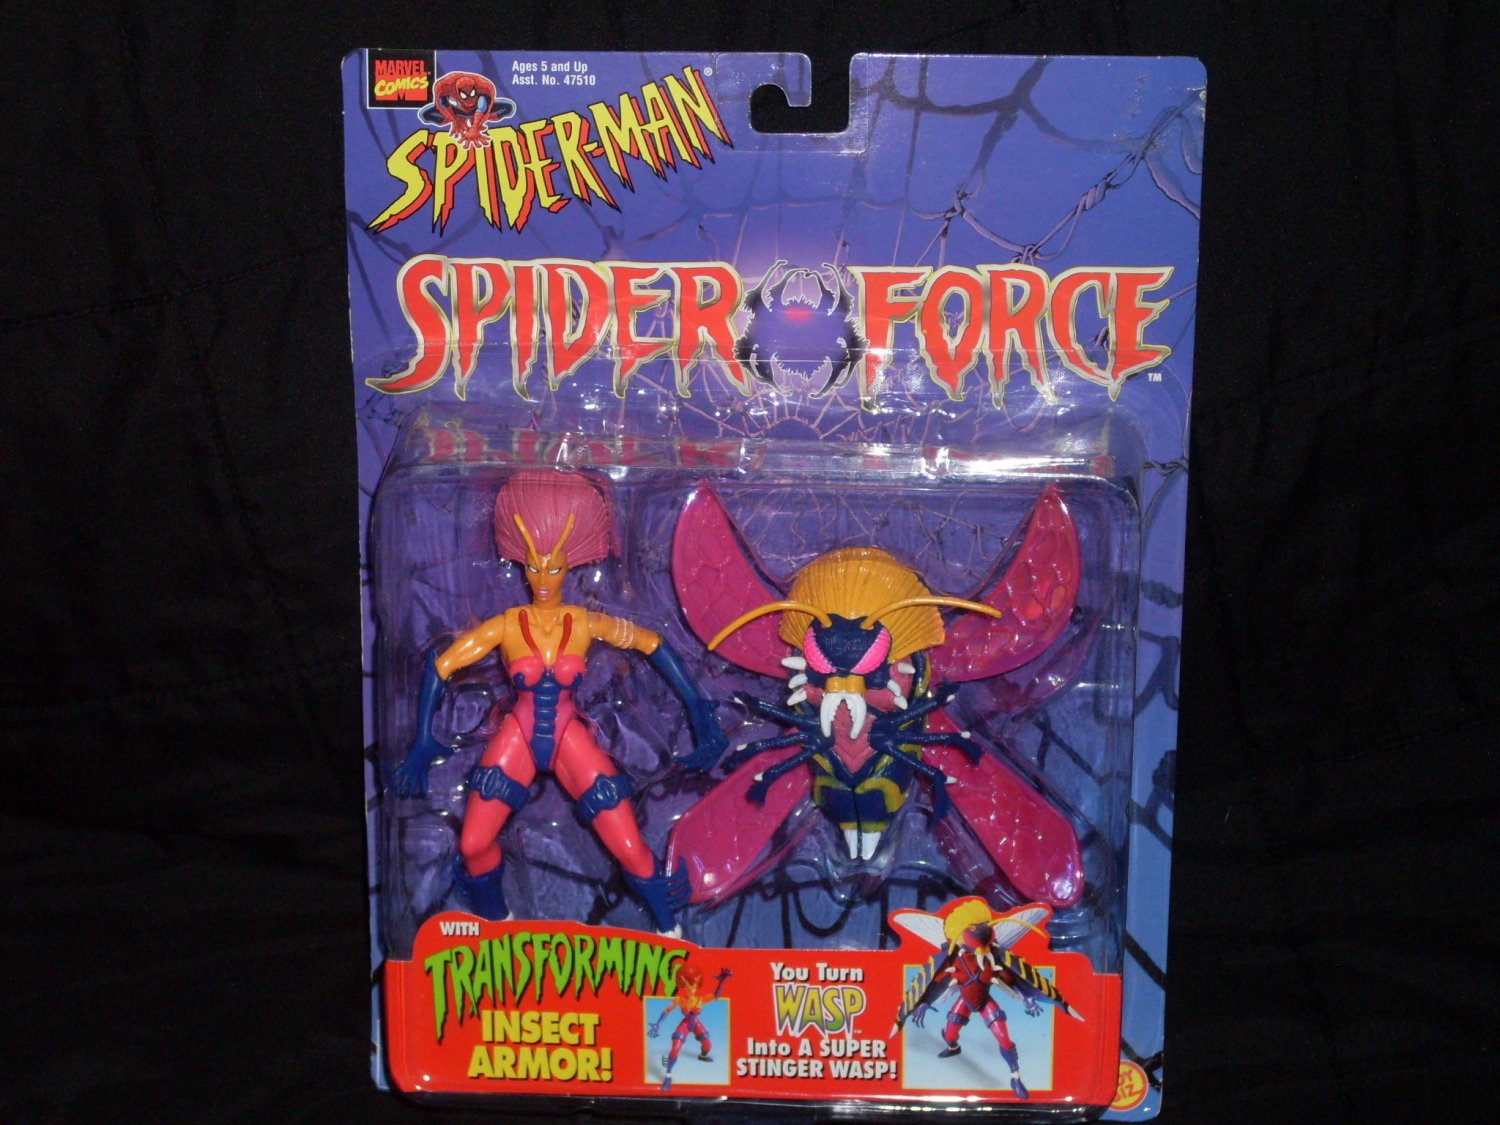 WASP FROM SPIDER-MAN SPIDER-FORCE (1996) Added Shipping Cost Outside USA